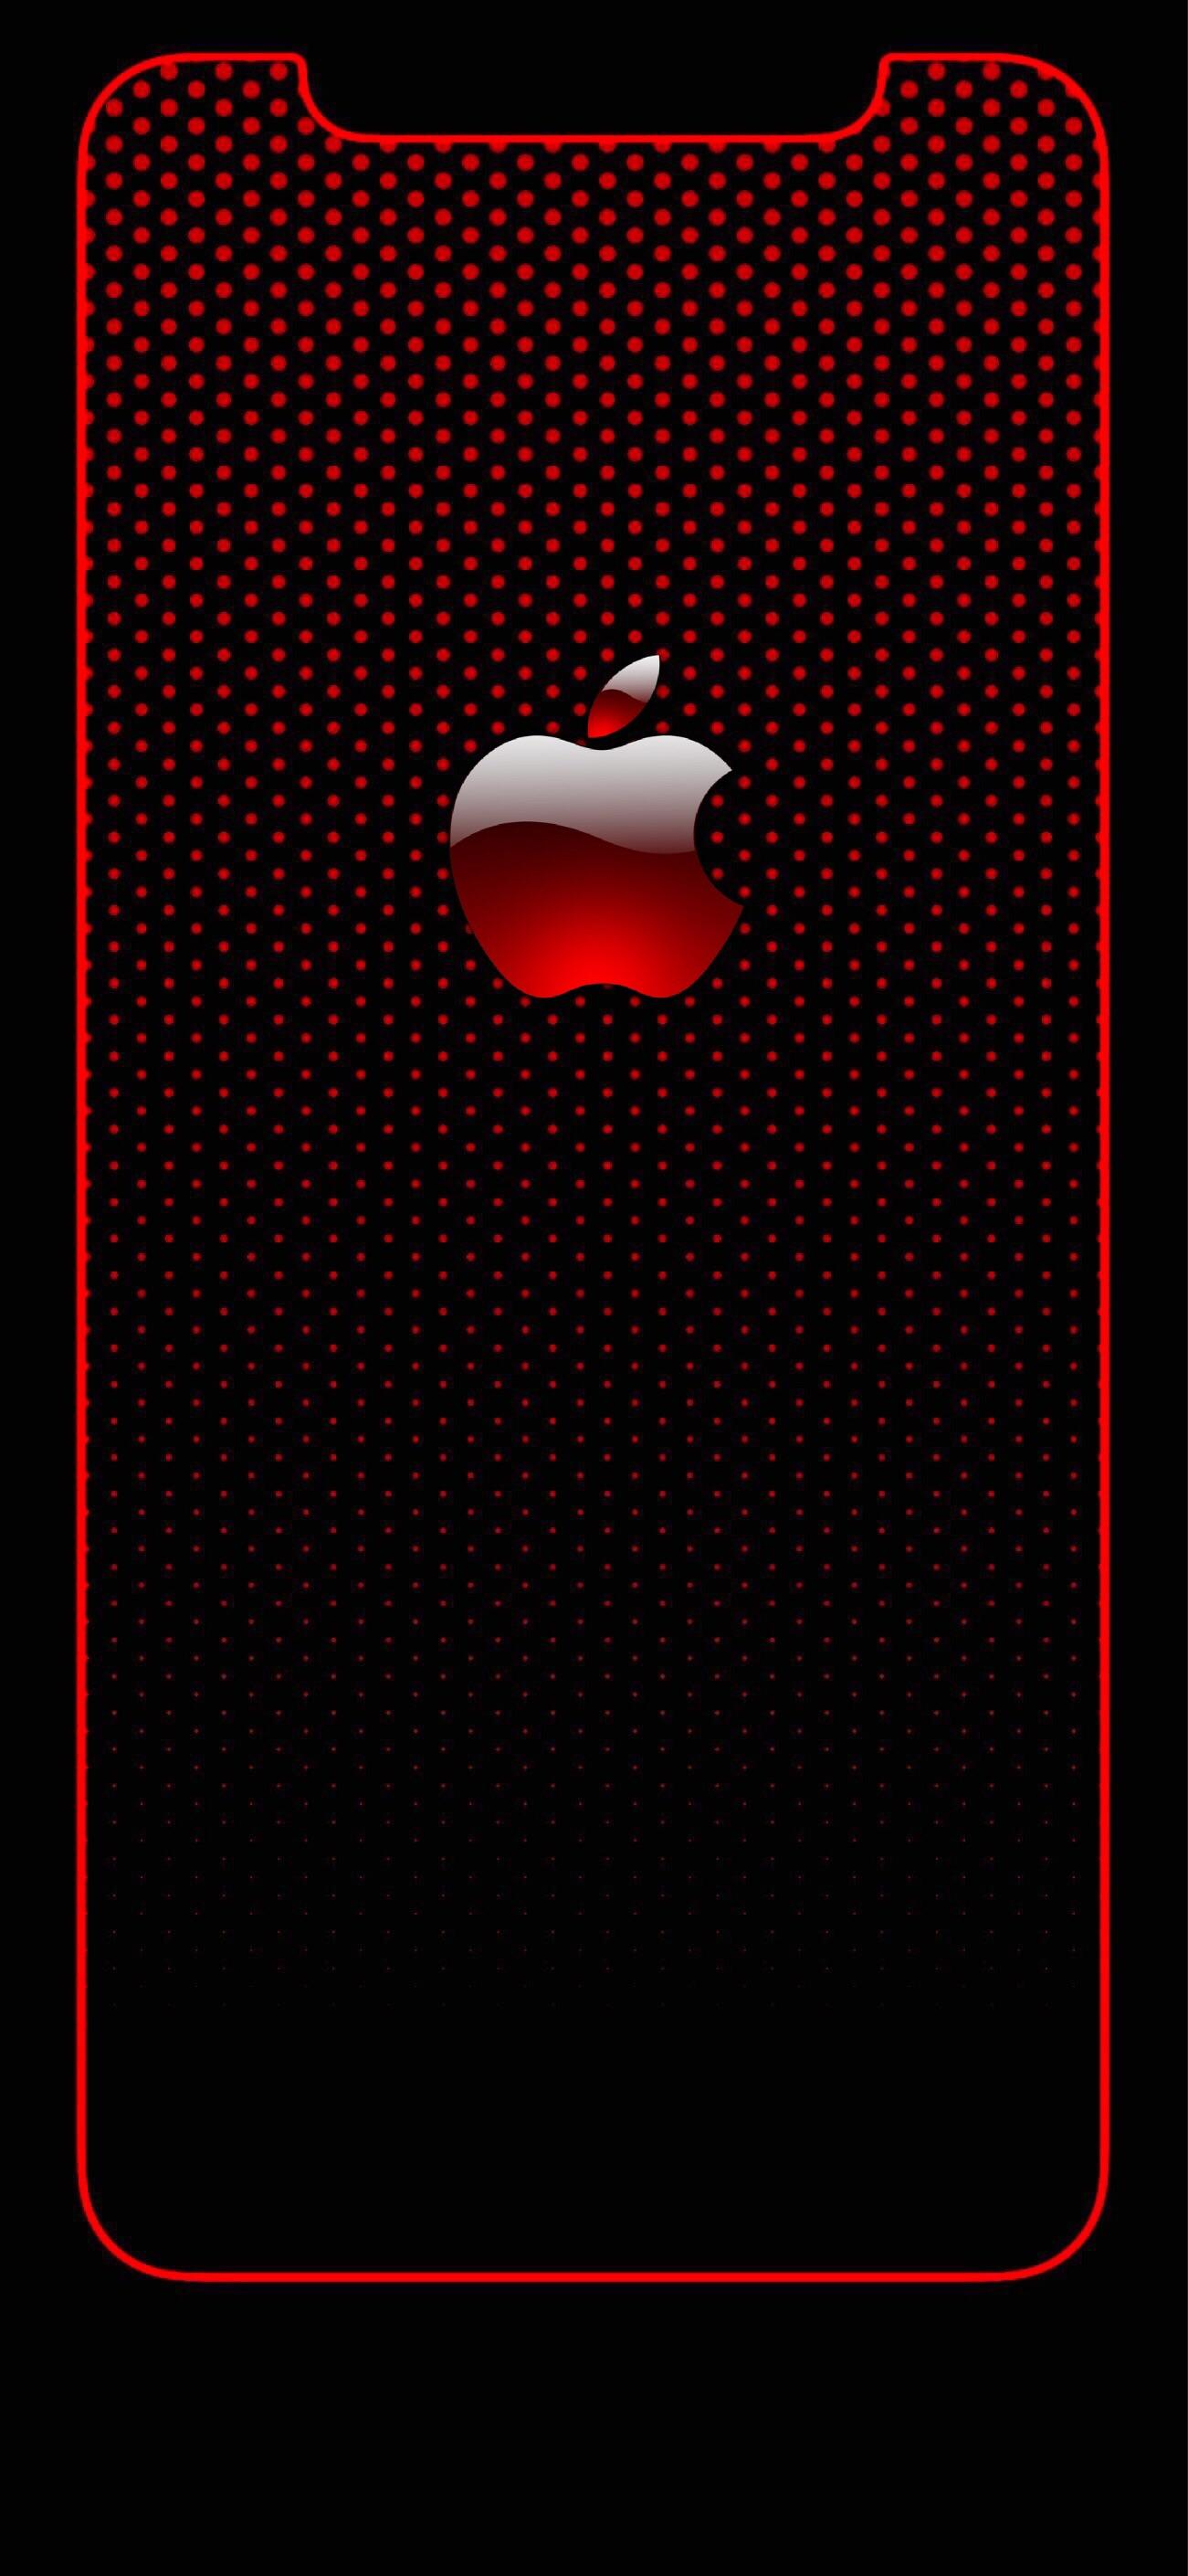 Red Apple Logo Wallpaper Posted By Zoey Mercado